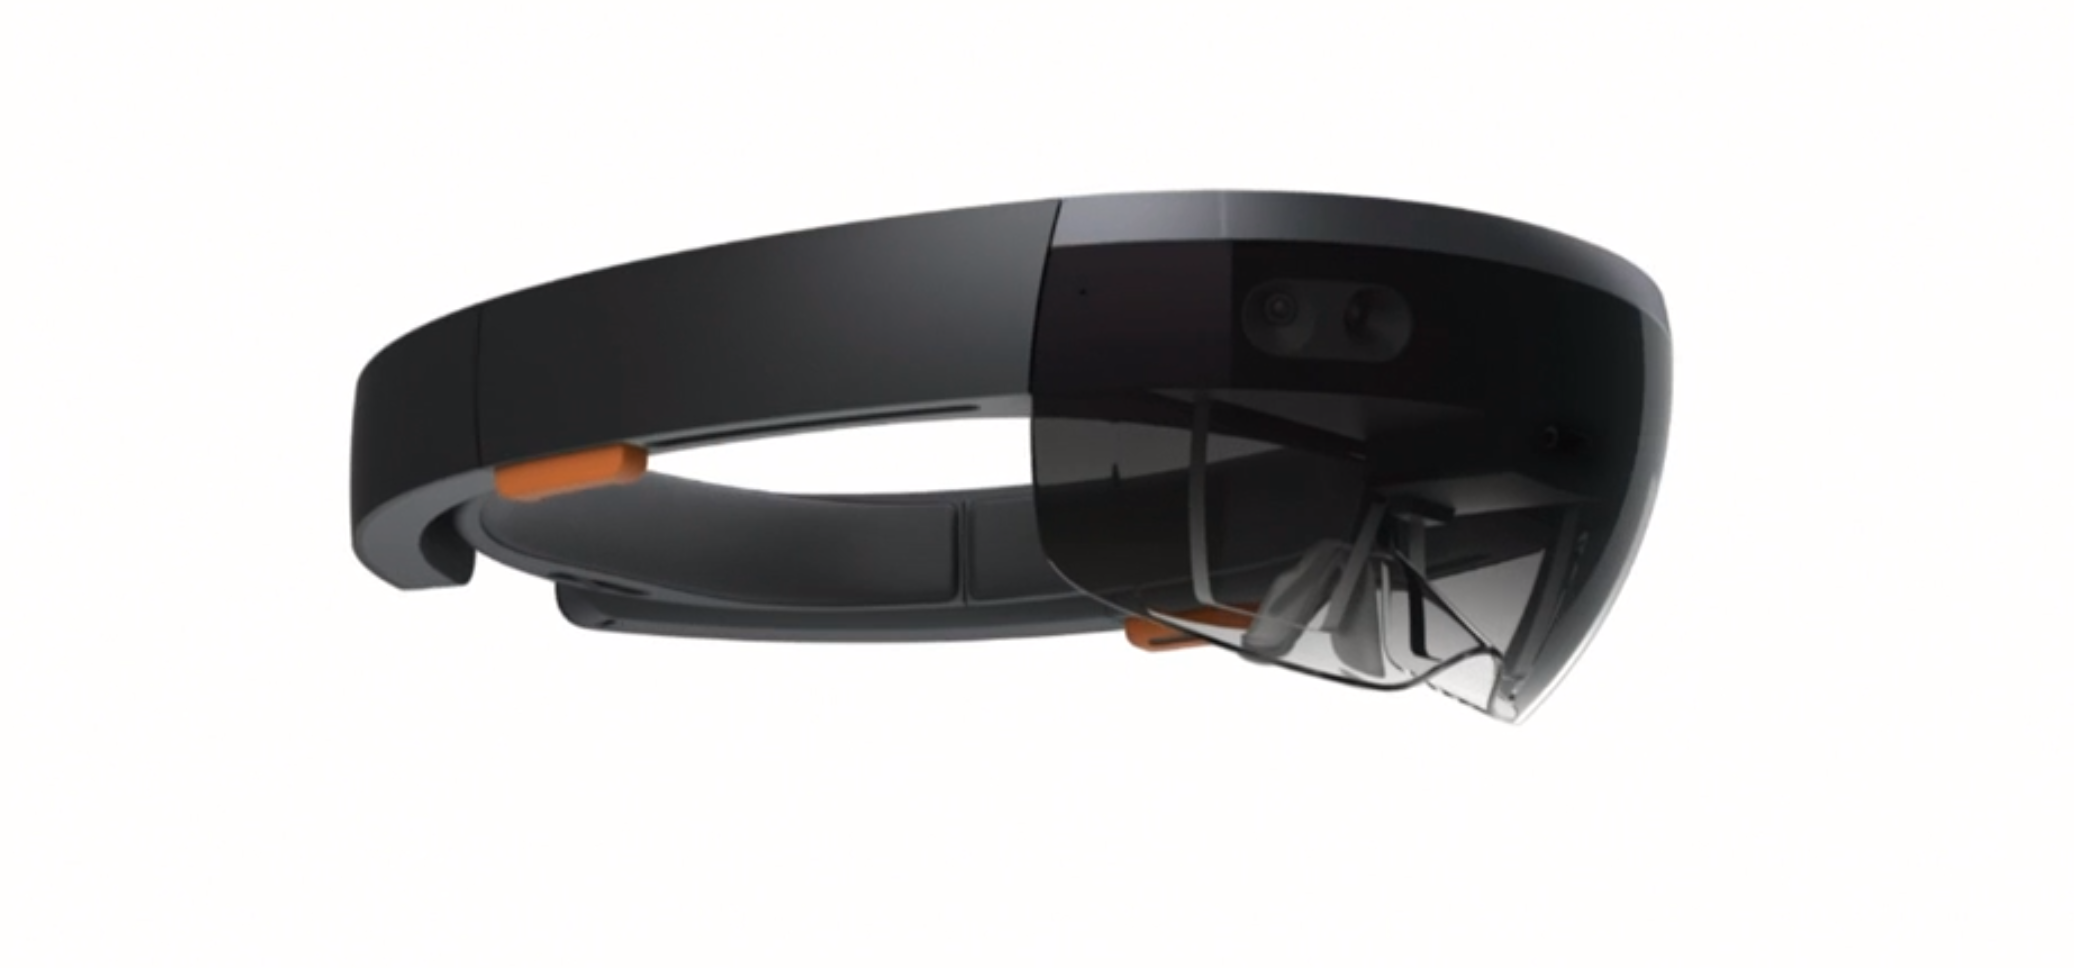 Microsoft HoloLens is one of a growing number of augmented reality headsets.